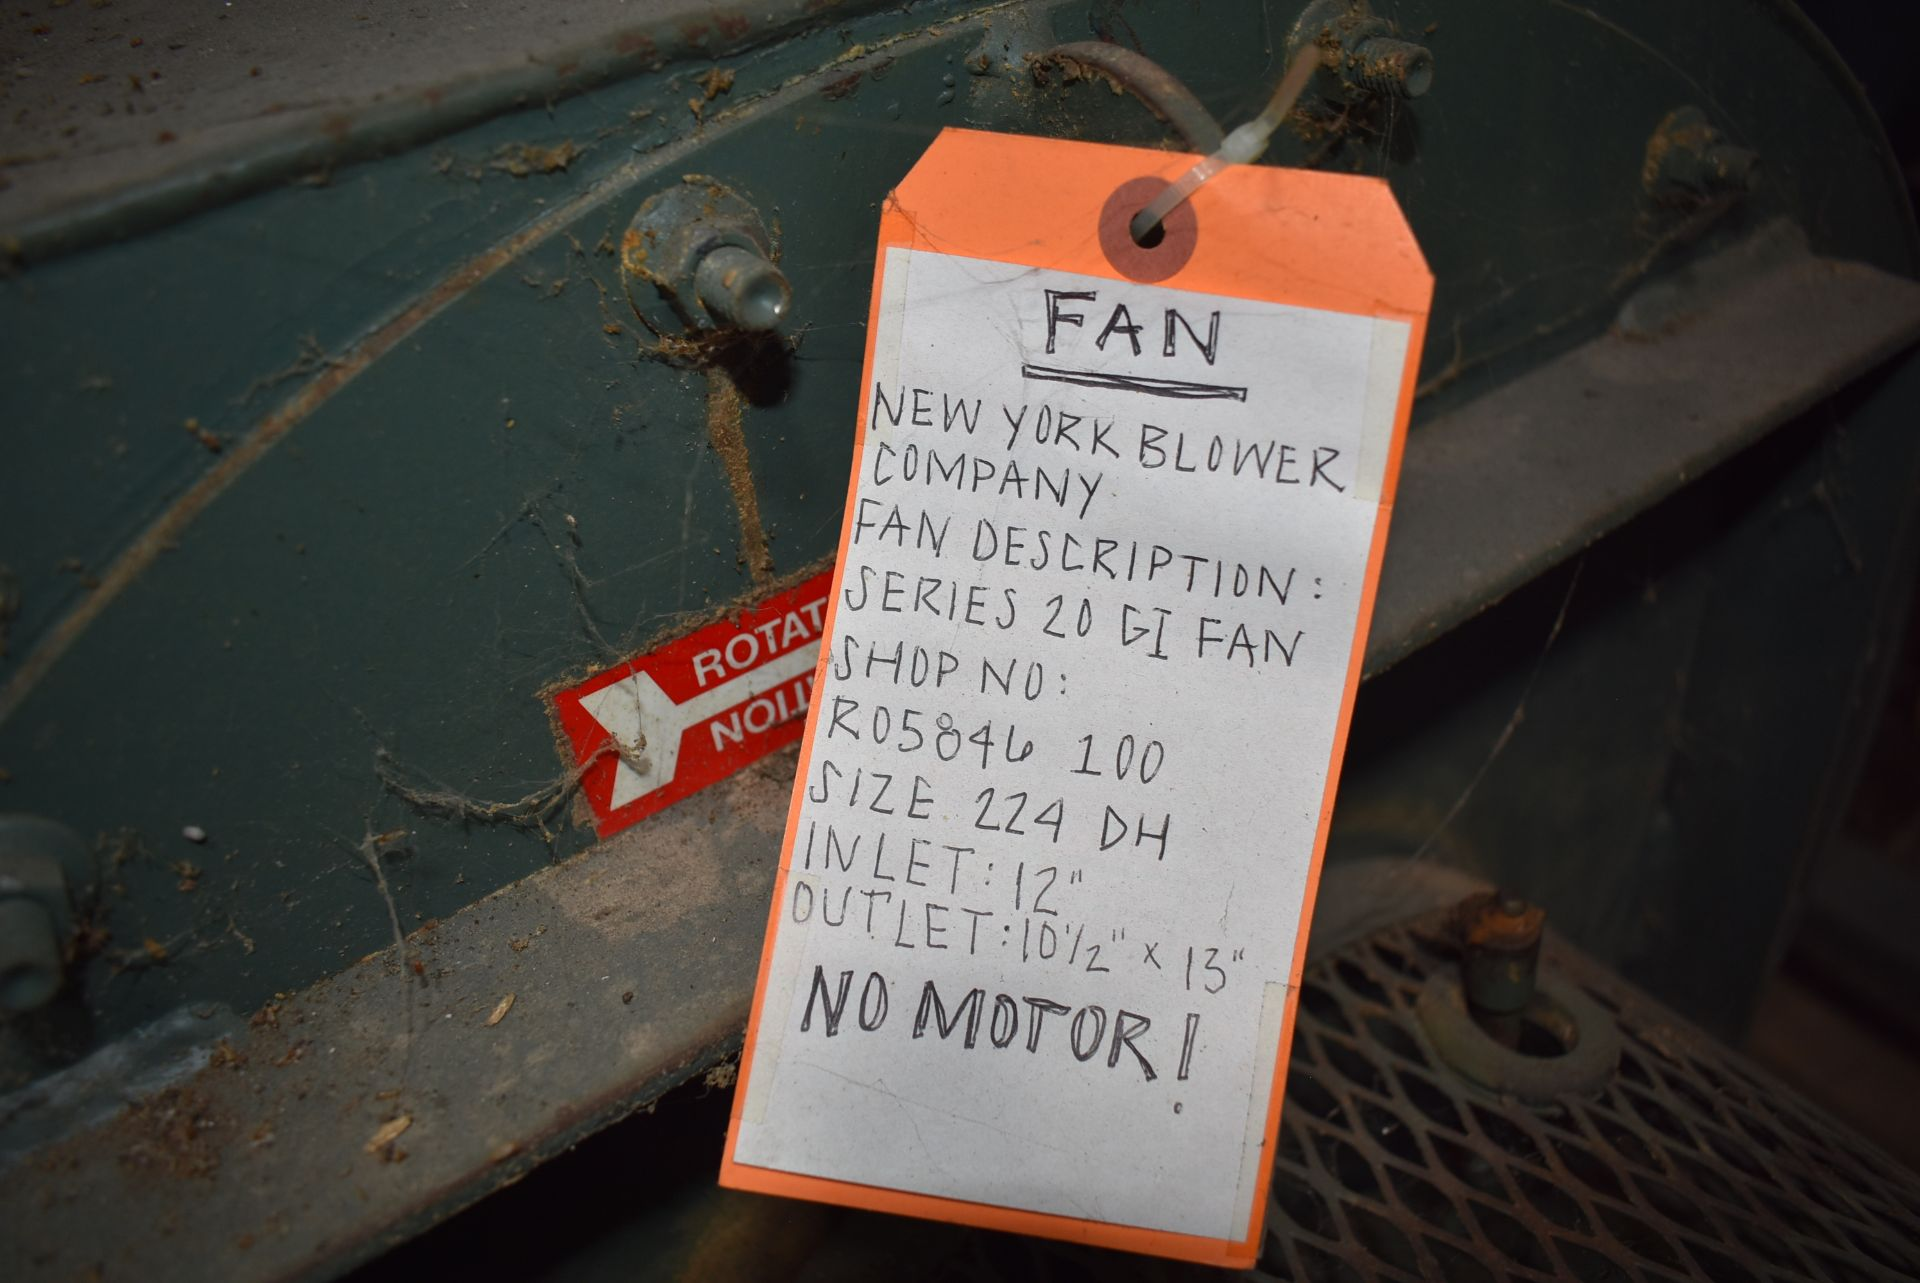 New York Blower, Series 20GI Fan, Size 224-DH, Does Not Include Motor - Image 3 of 4